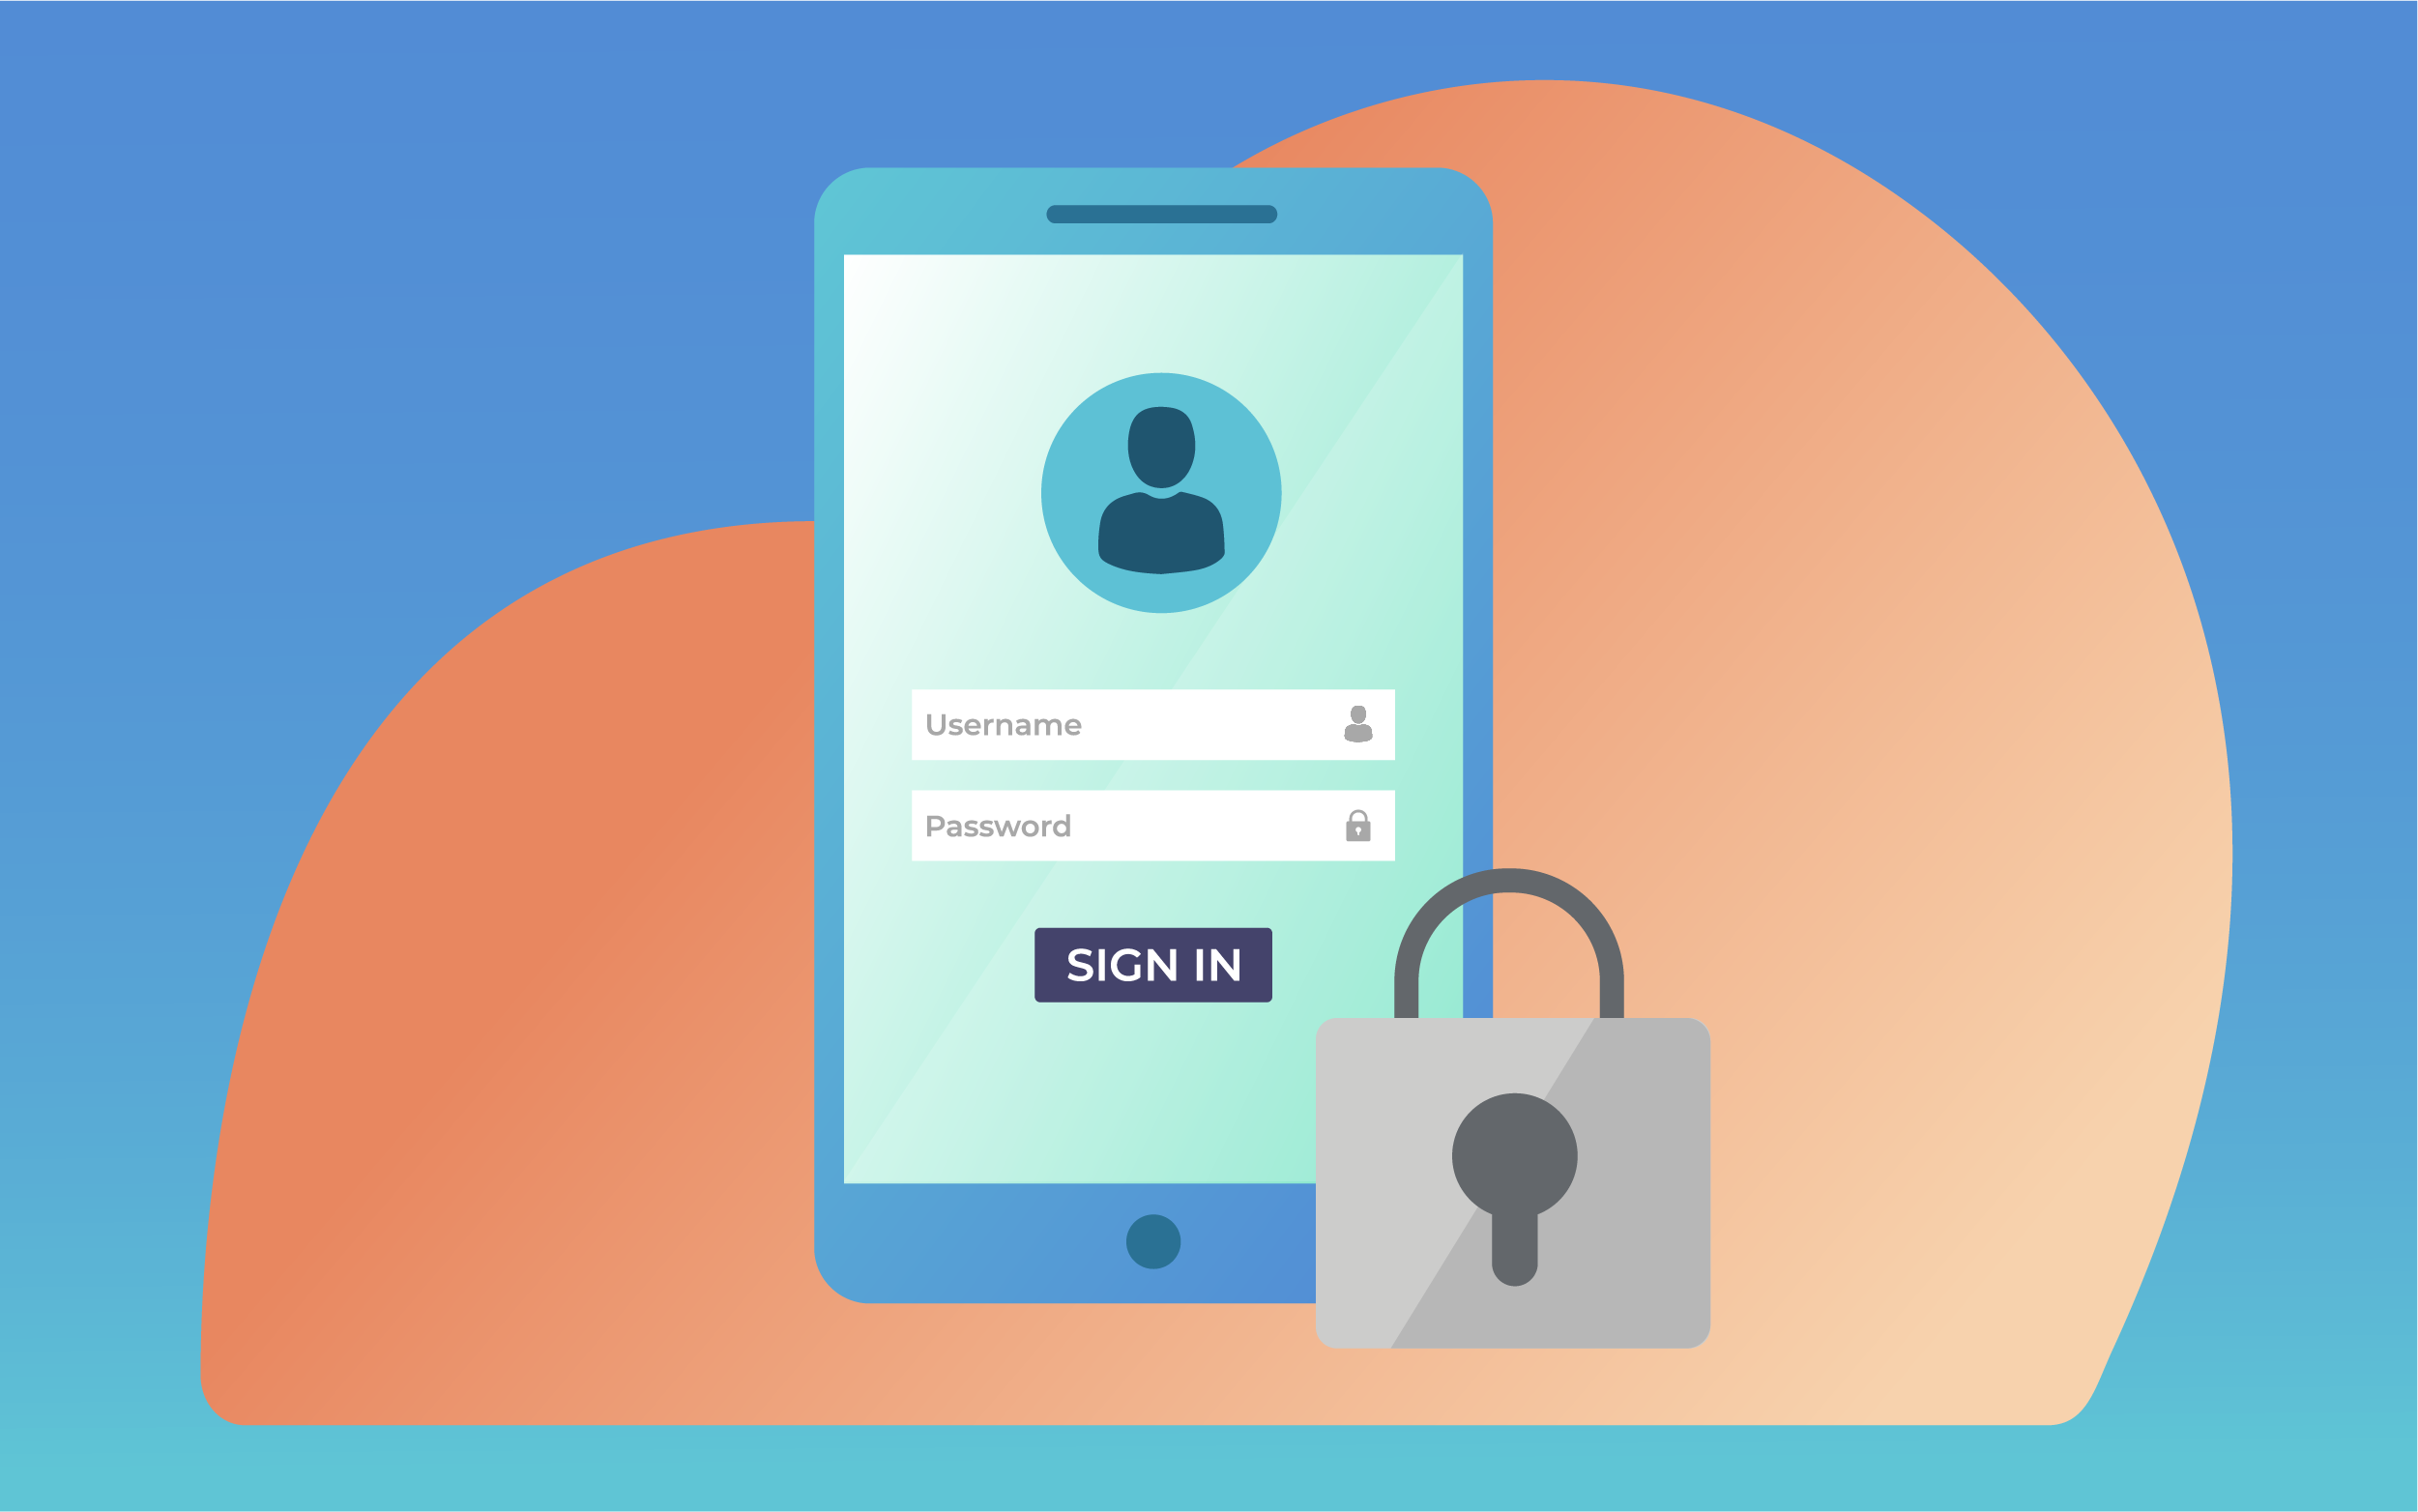 Illustration of a lock and a cell phone with an account log-in screen visible